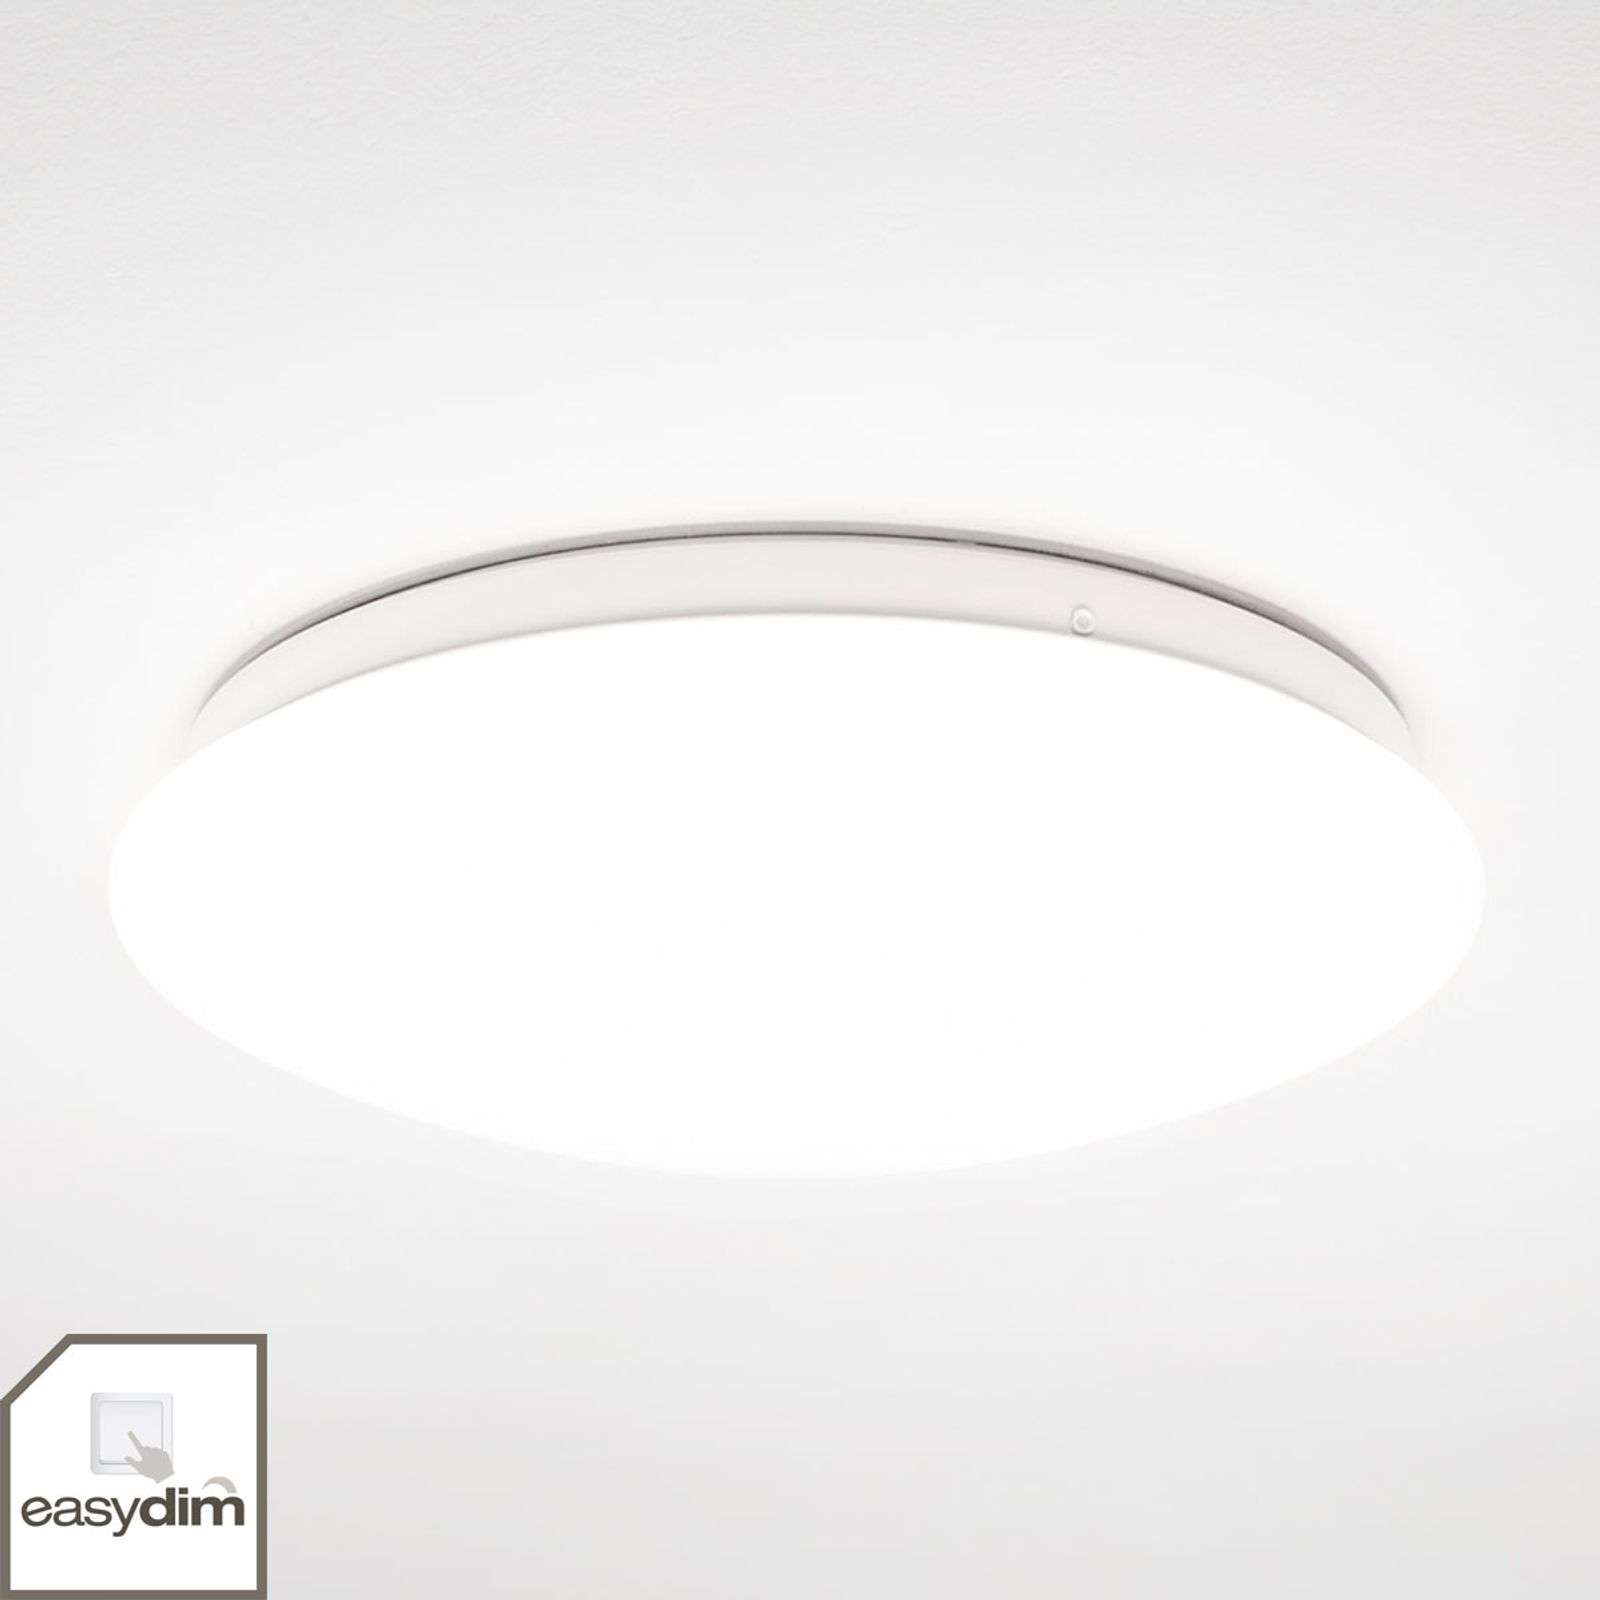 Mension - plafonnier LED variable - 25 cm